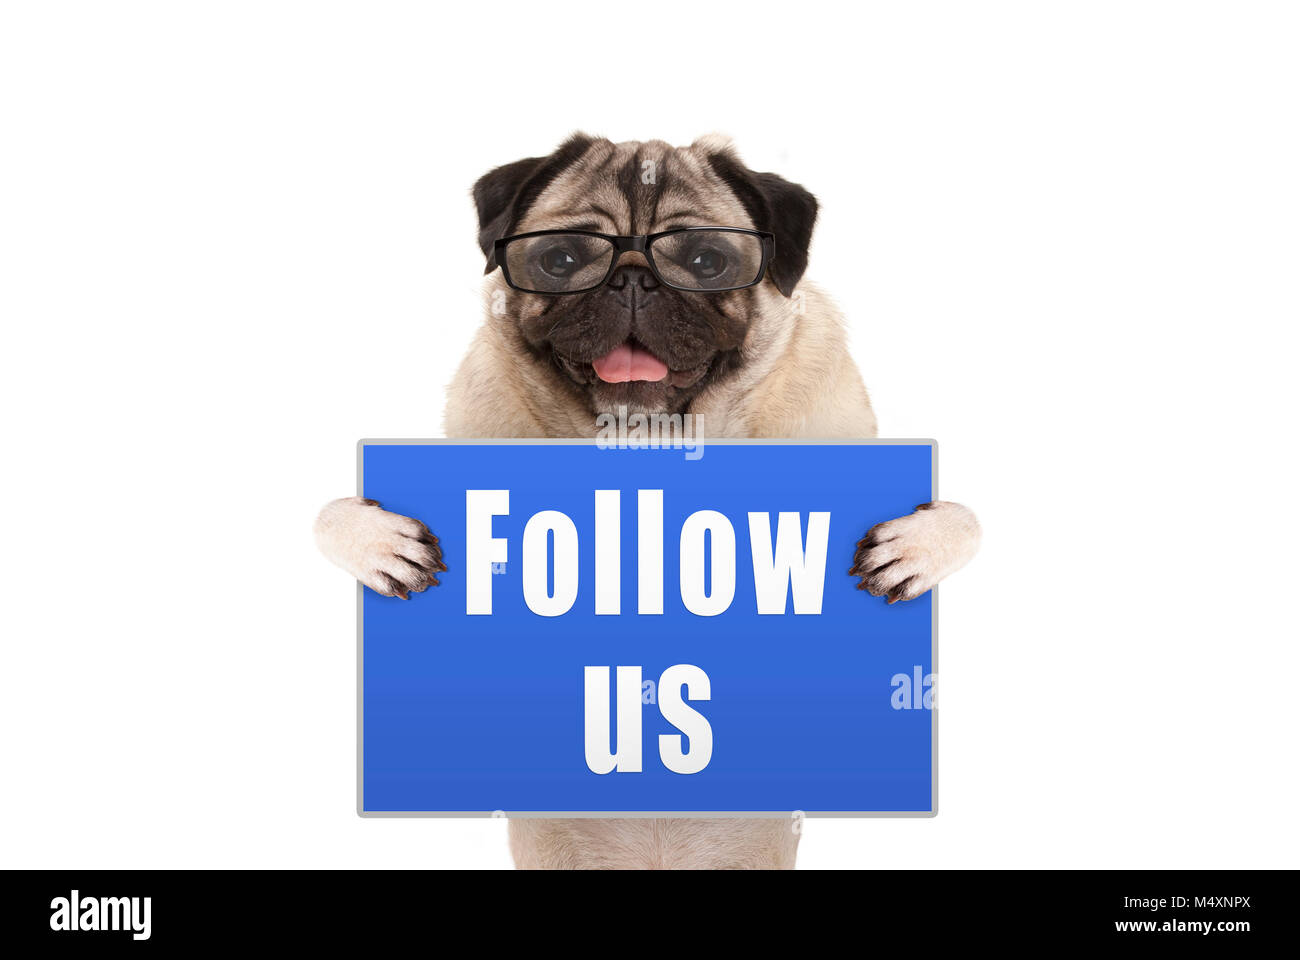 pug dog with glasses holding up blue sign with text follow us, isolated on white background - Stock Image